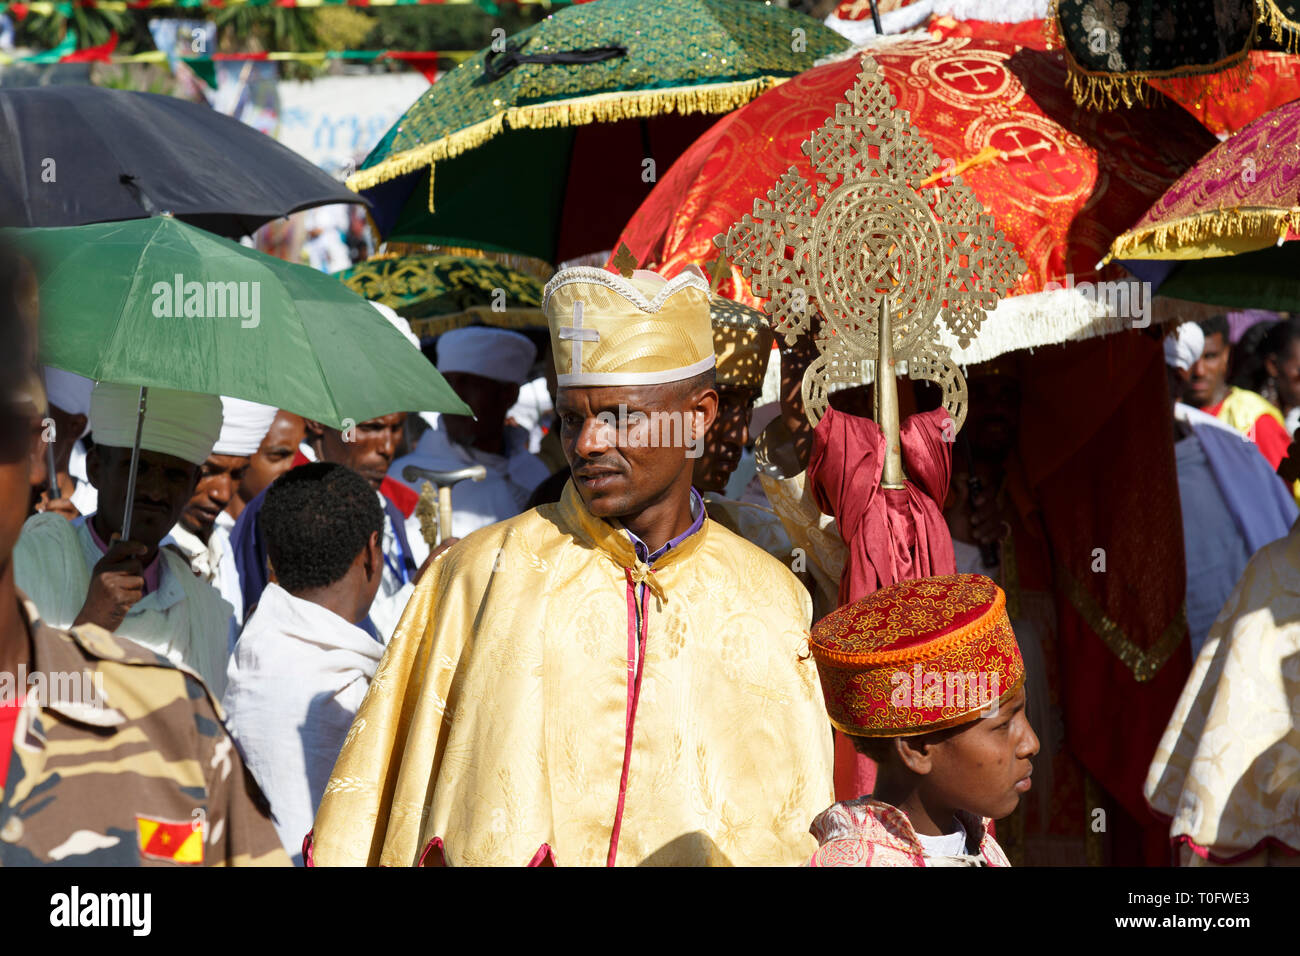 Gonder, Ethiopia, February 18 2015: People dressed in traditional attire celebrate the Timkat festival, the important Ethiopian Orthodox celebration o Stock Photo